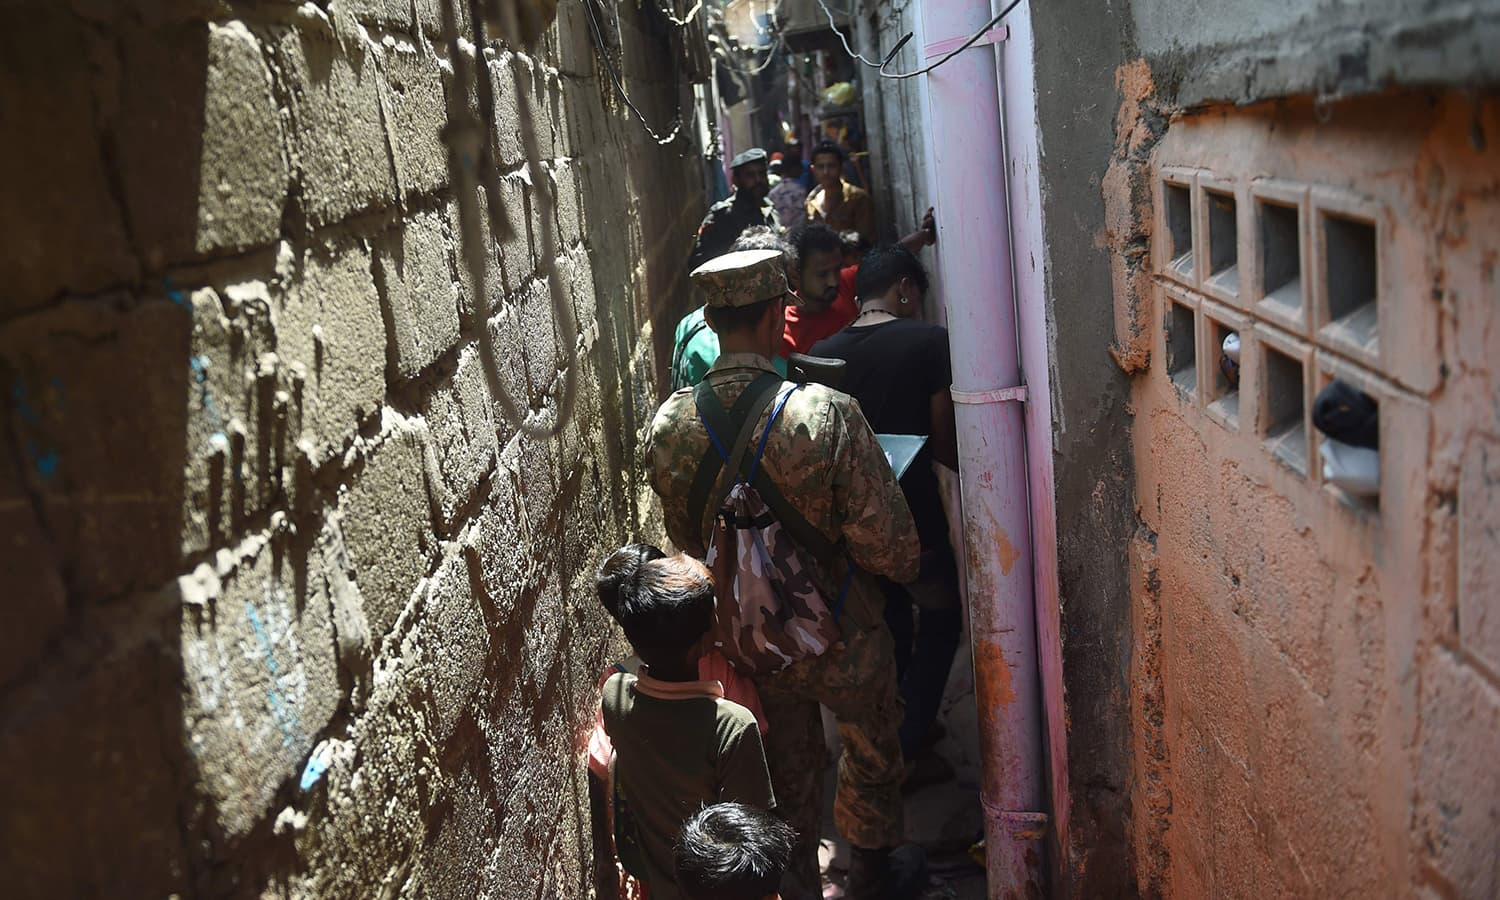 Officials from the Pakistan Bureau of Statistics collect information from residents during a census in a narrow street in Karachi. — AFP